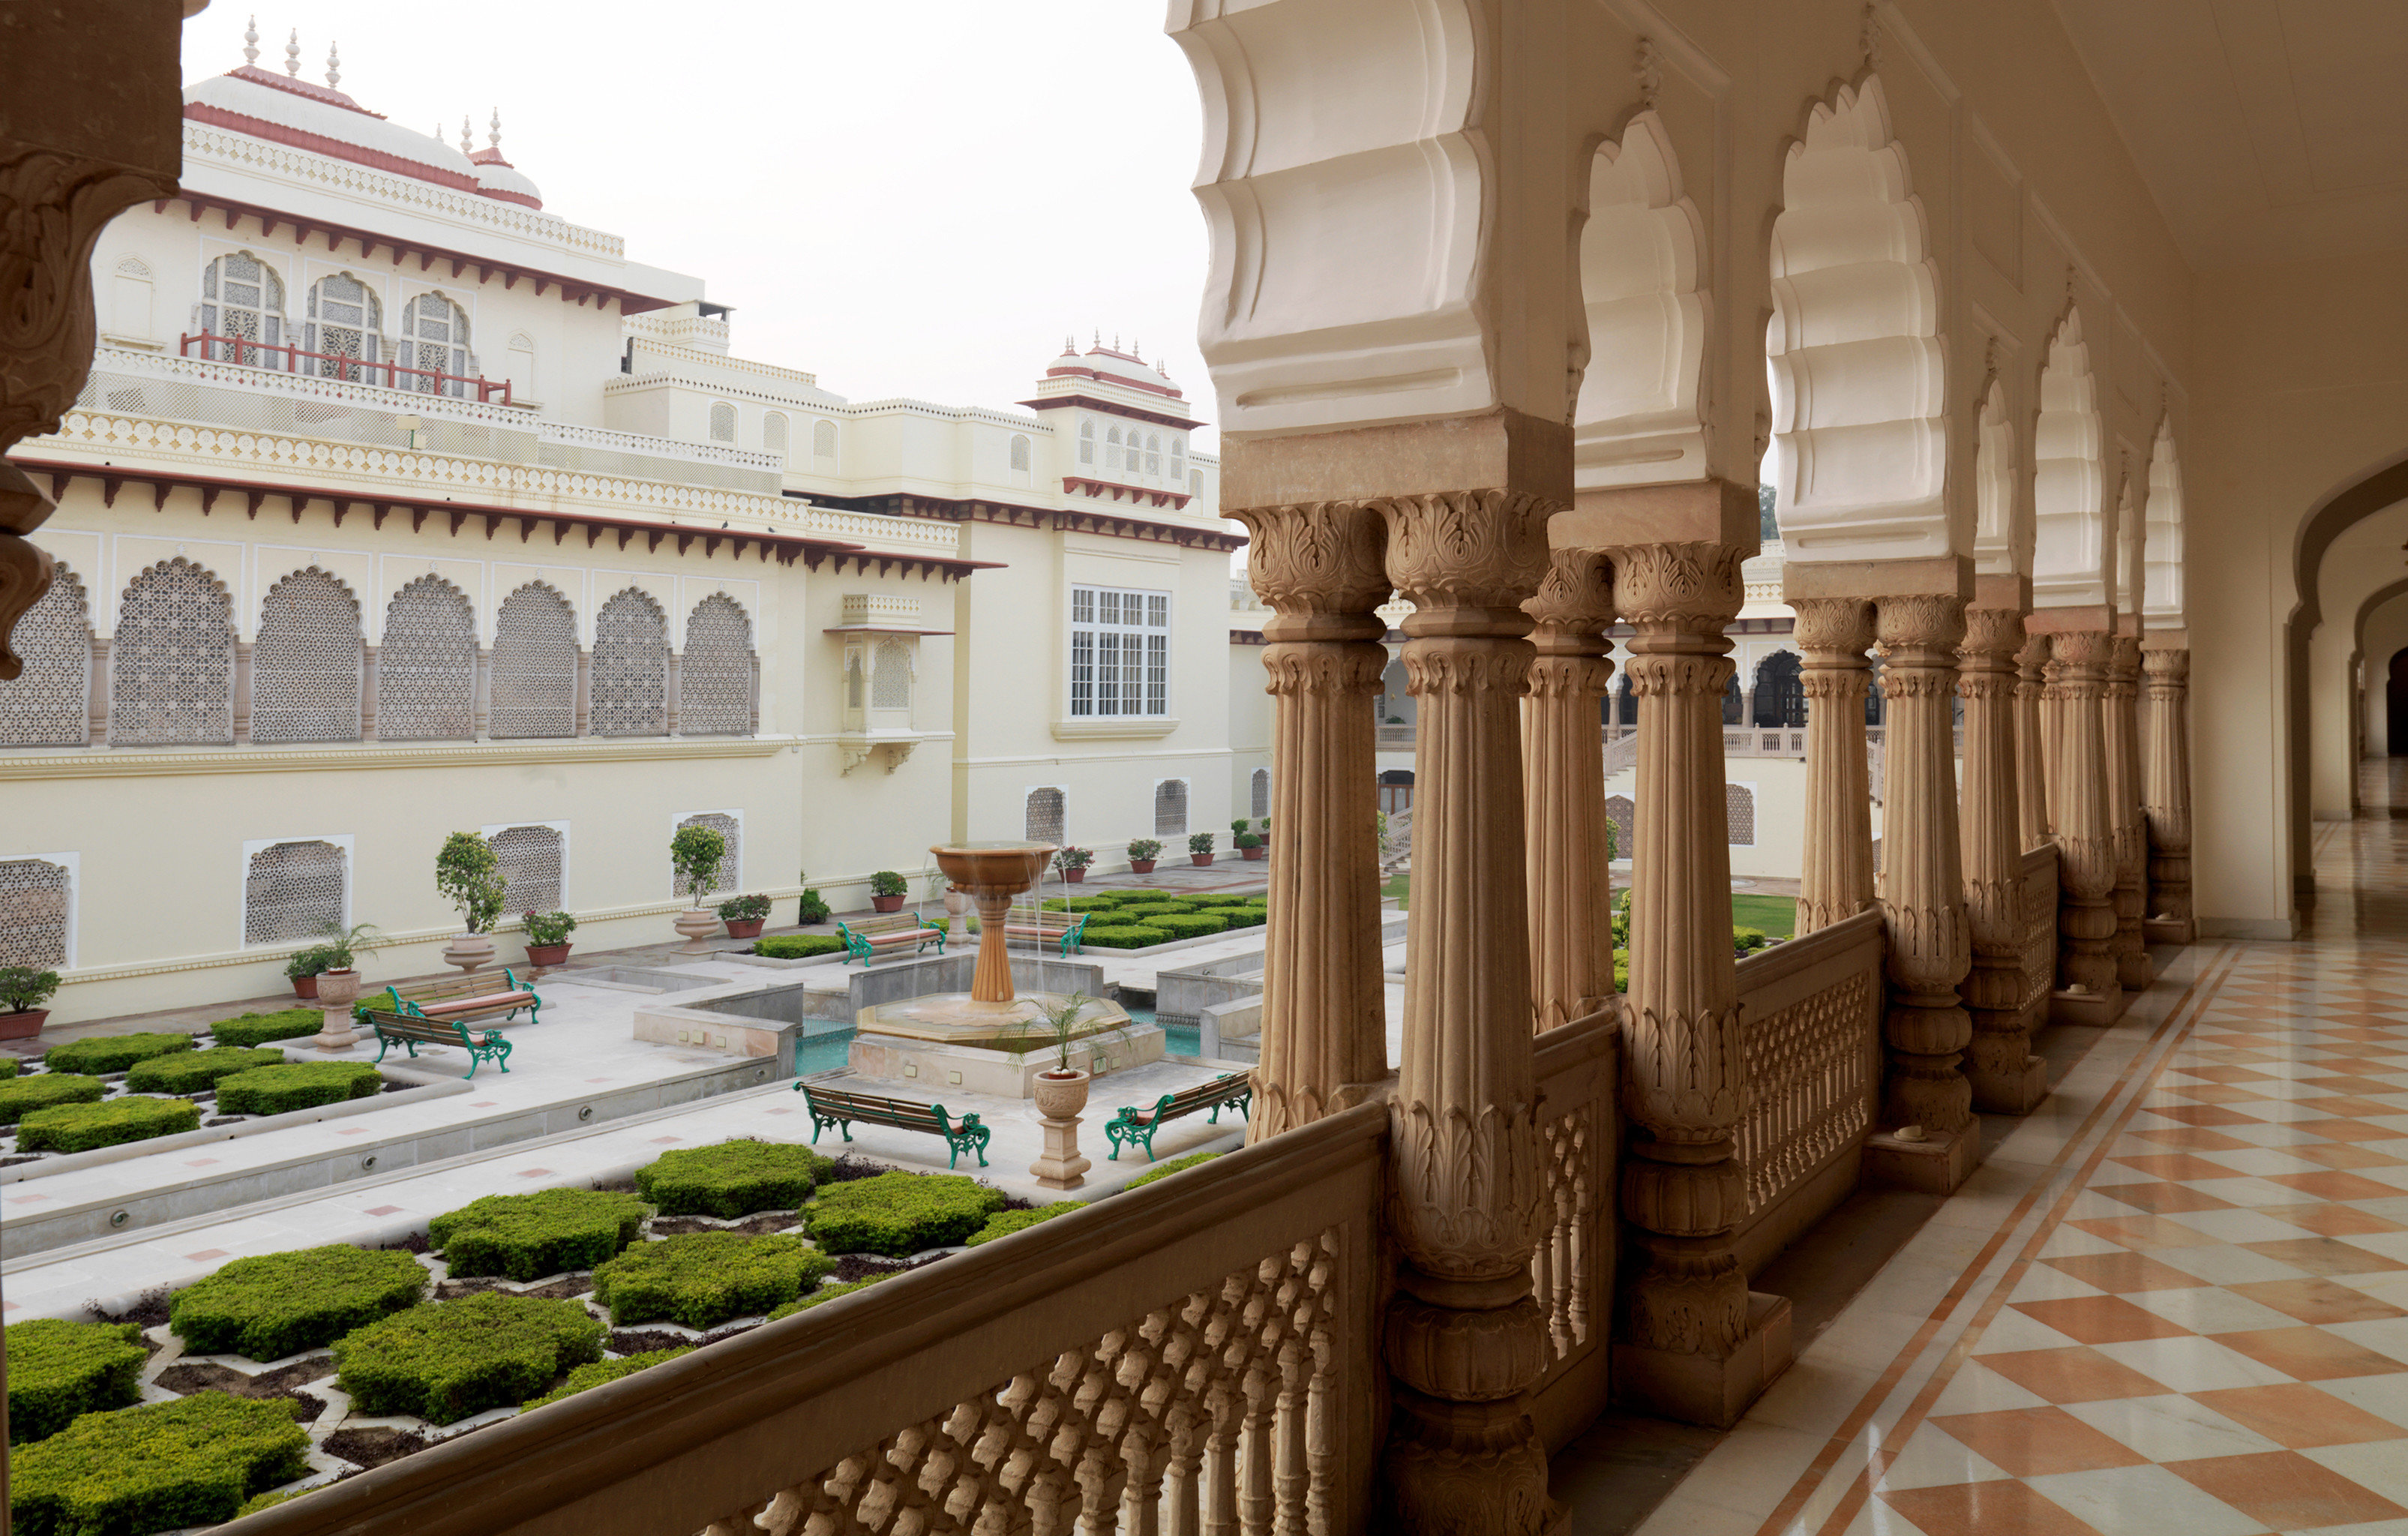 Architecture Buildings Elegant Grounds Luxury Resort building palace Courtyard ancient history mansion tourist attraction place of worship plaza colonnade